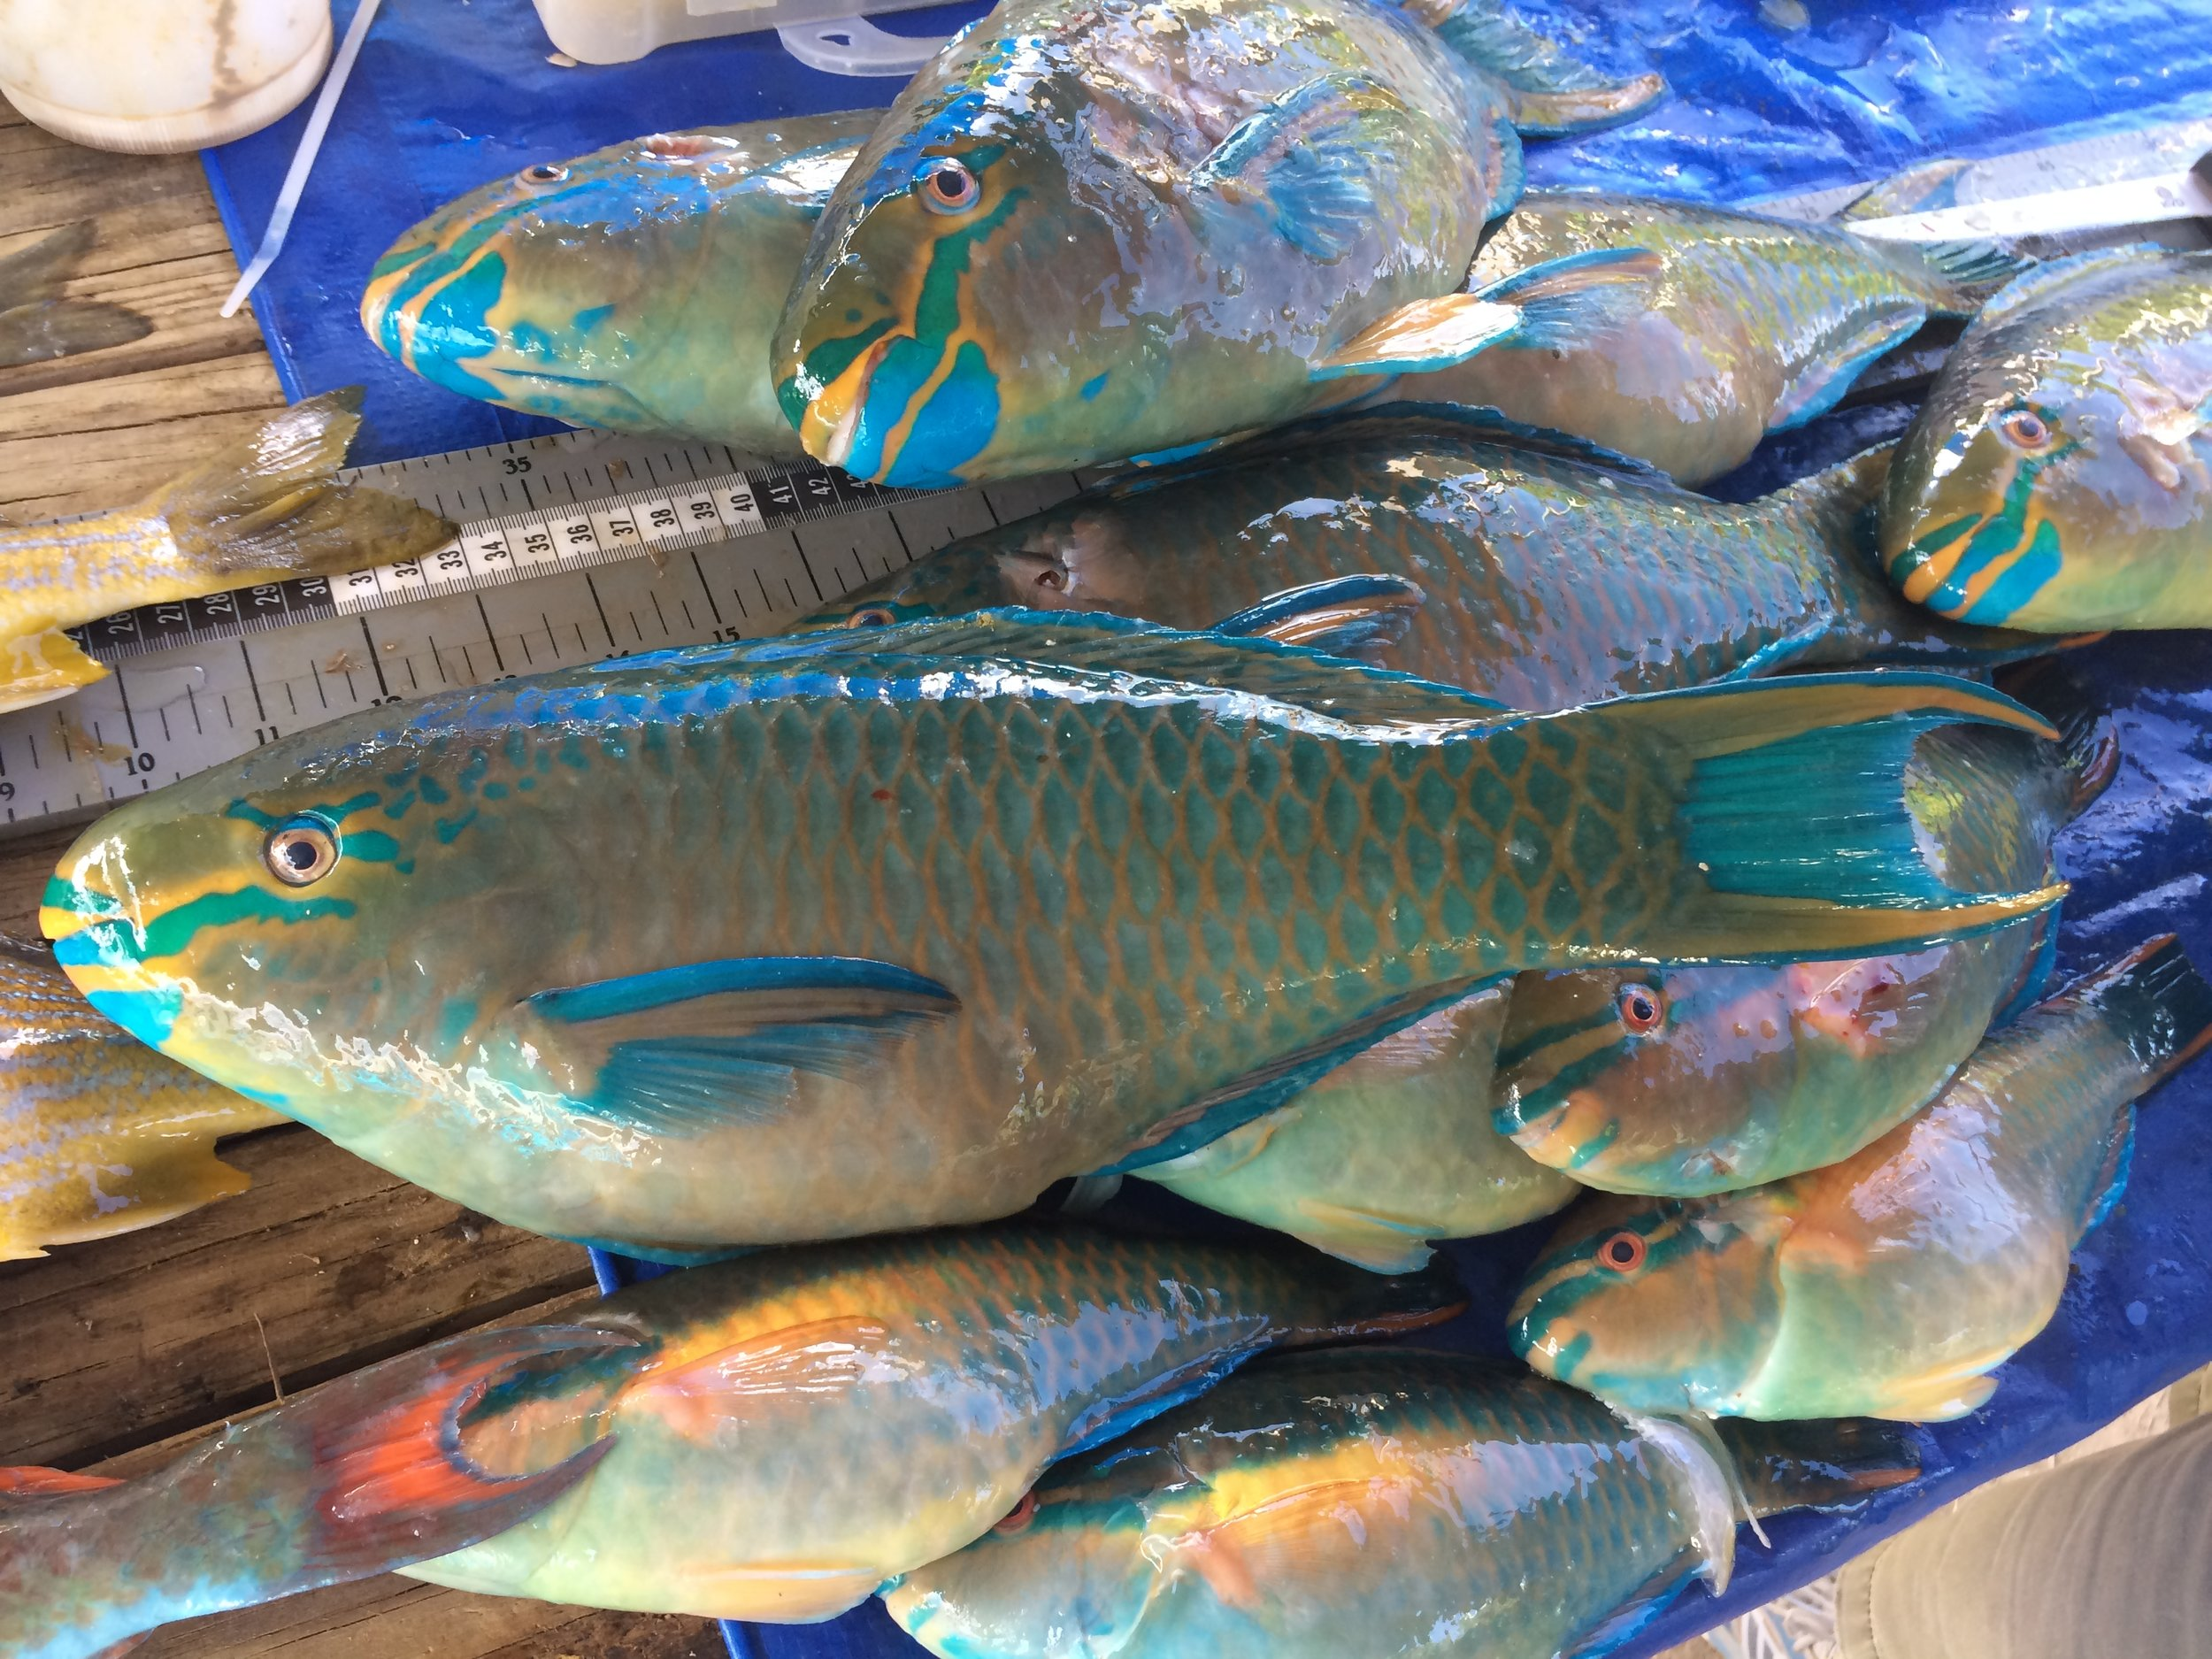 Parrotfish have been a highly favored food source throughout the Caribbean. This has lead directly to their significant population decline.